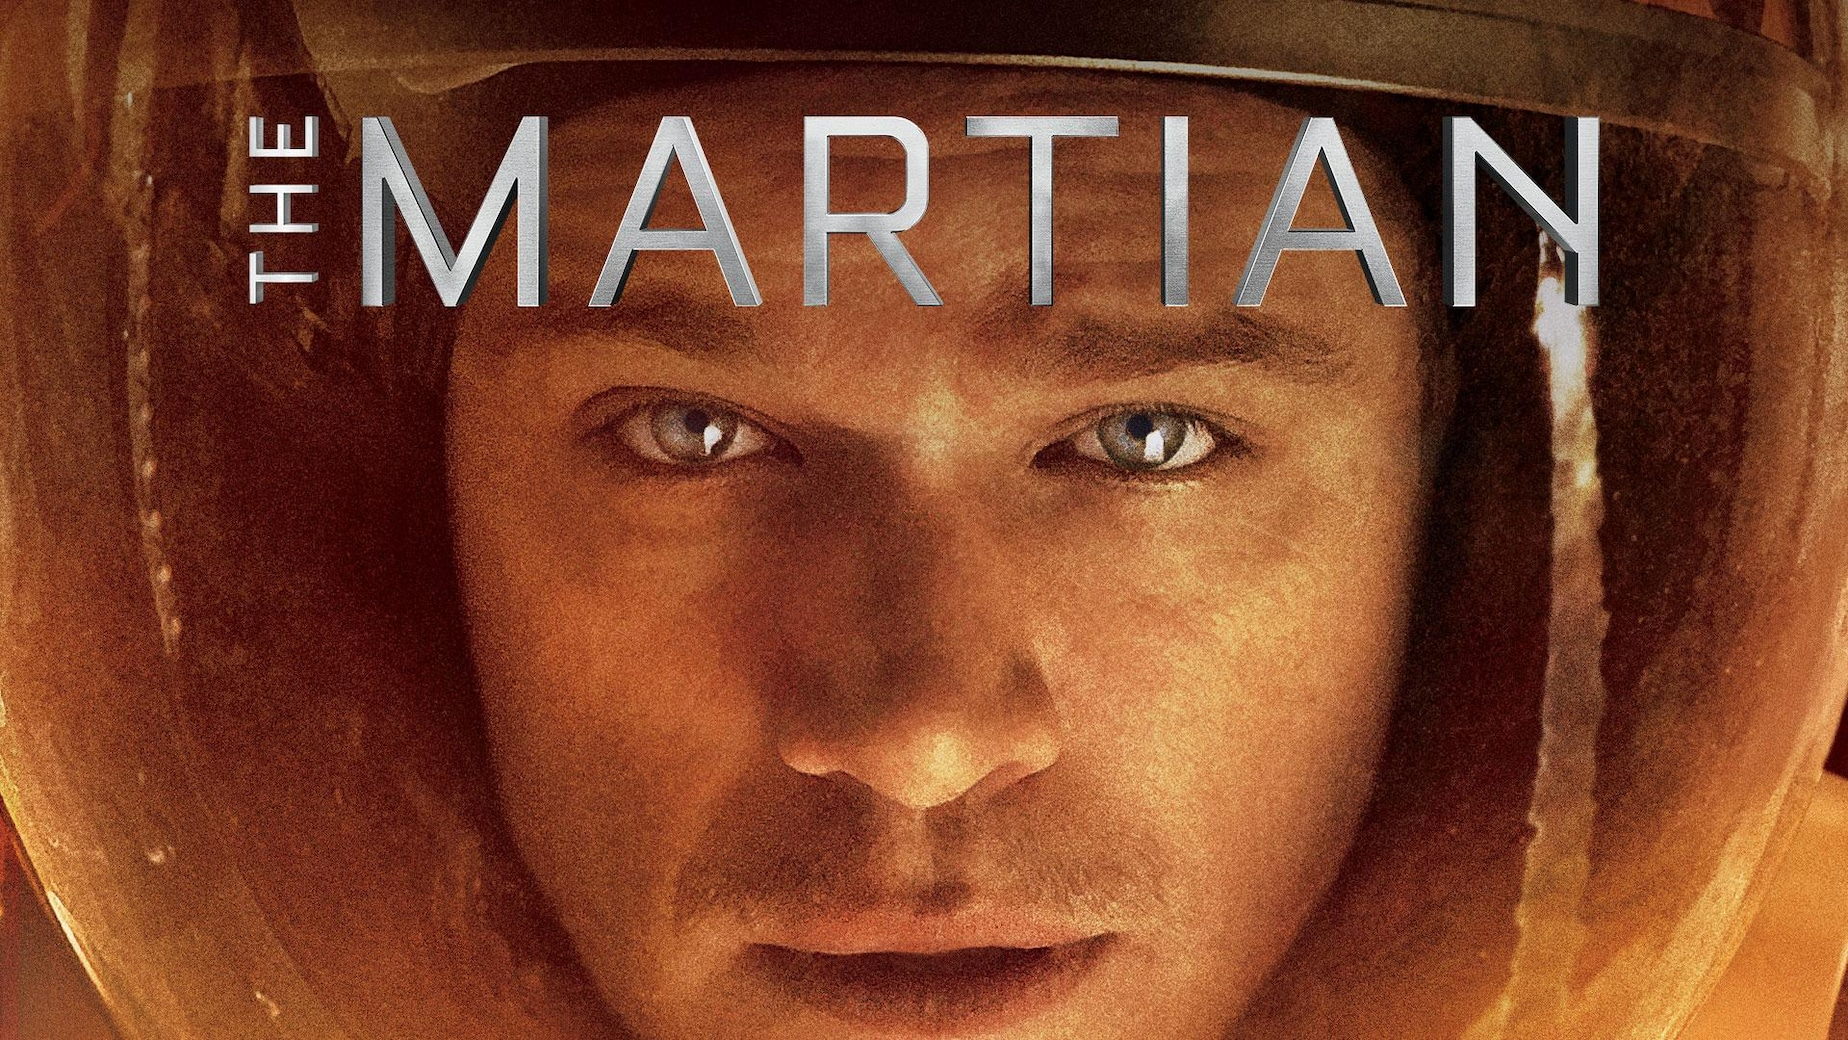 martian movie online with english subtitles